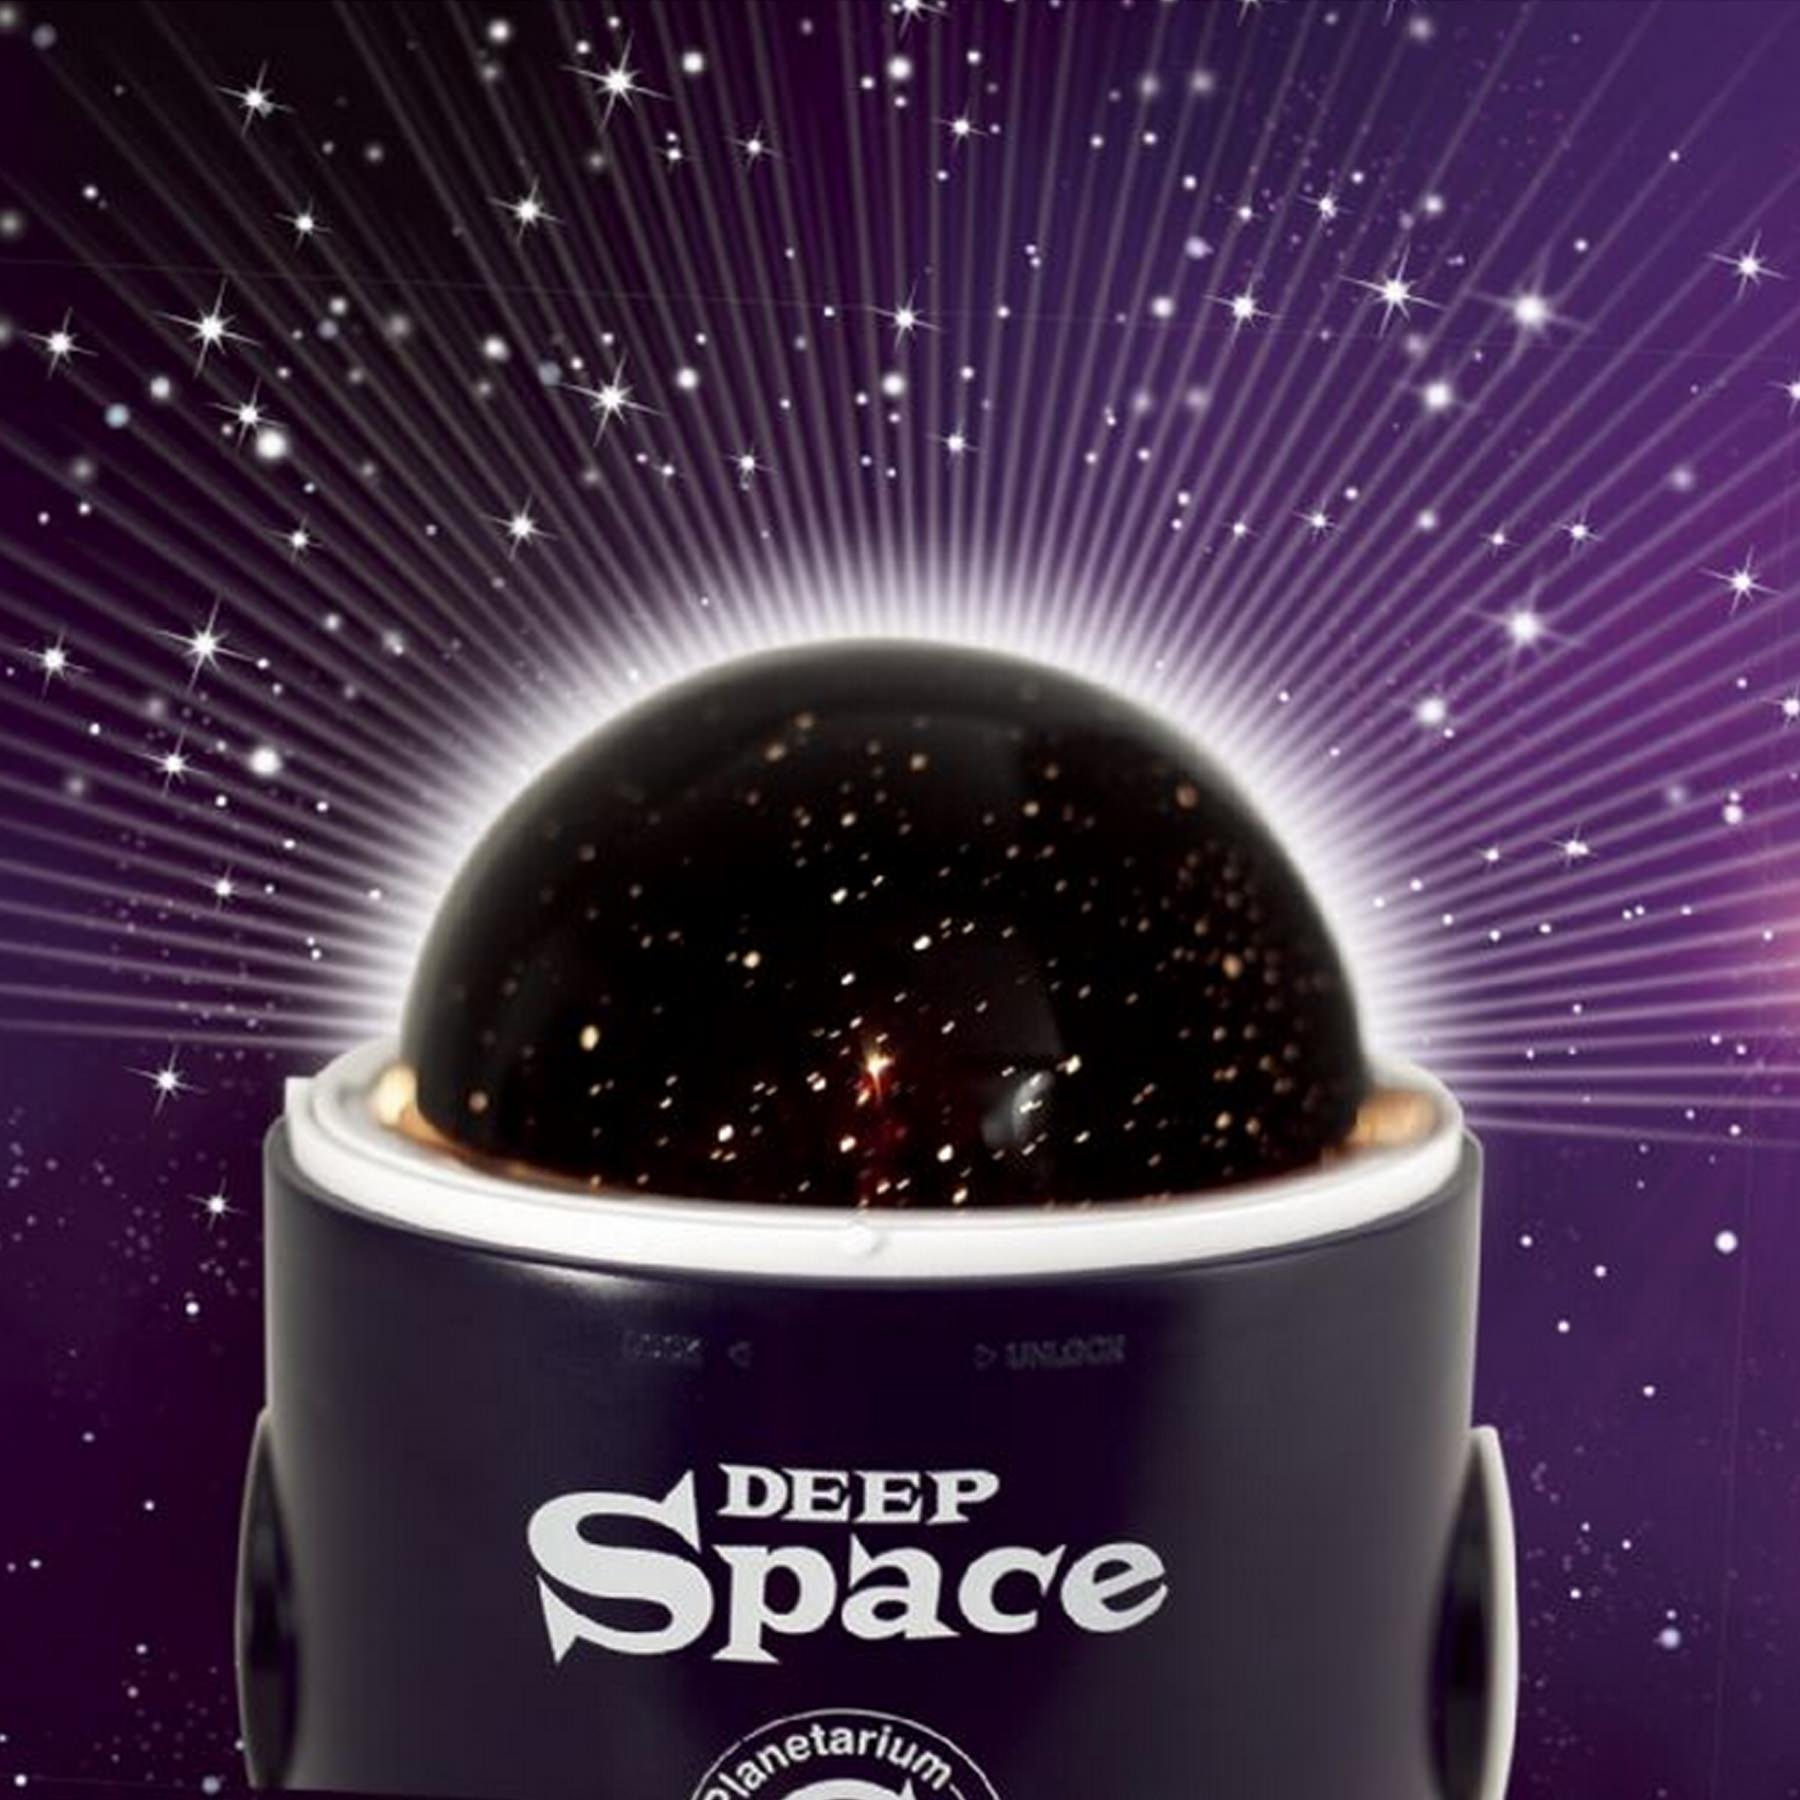 Brainstorm Toys Deep Space Home Planetarium and Projector by Brainstorm Toys (Image #4)